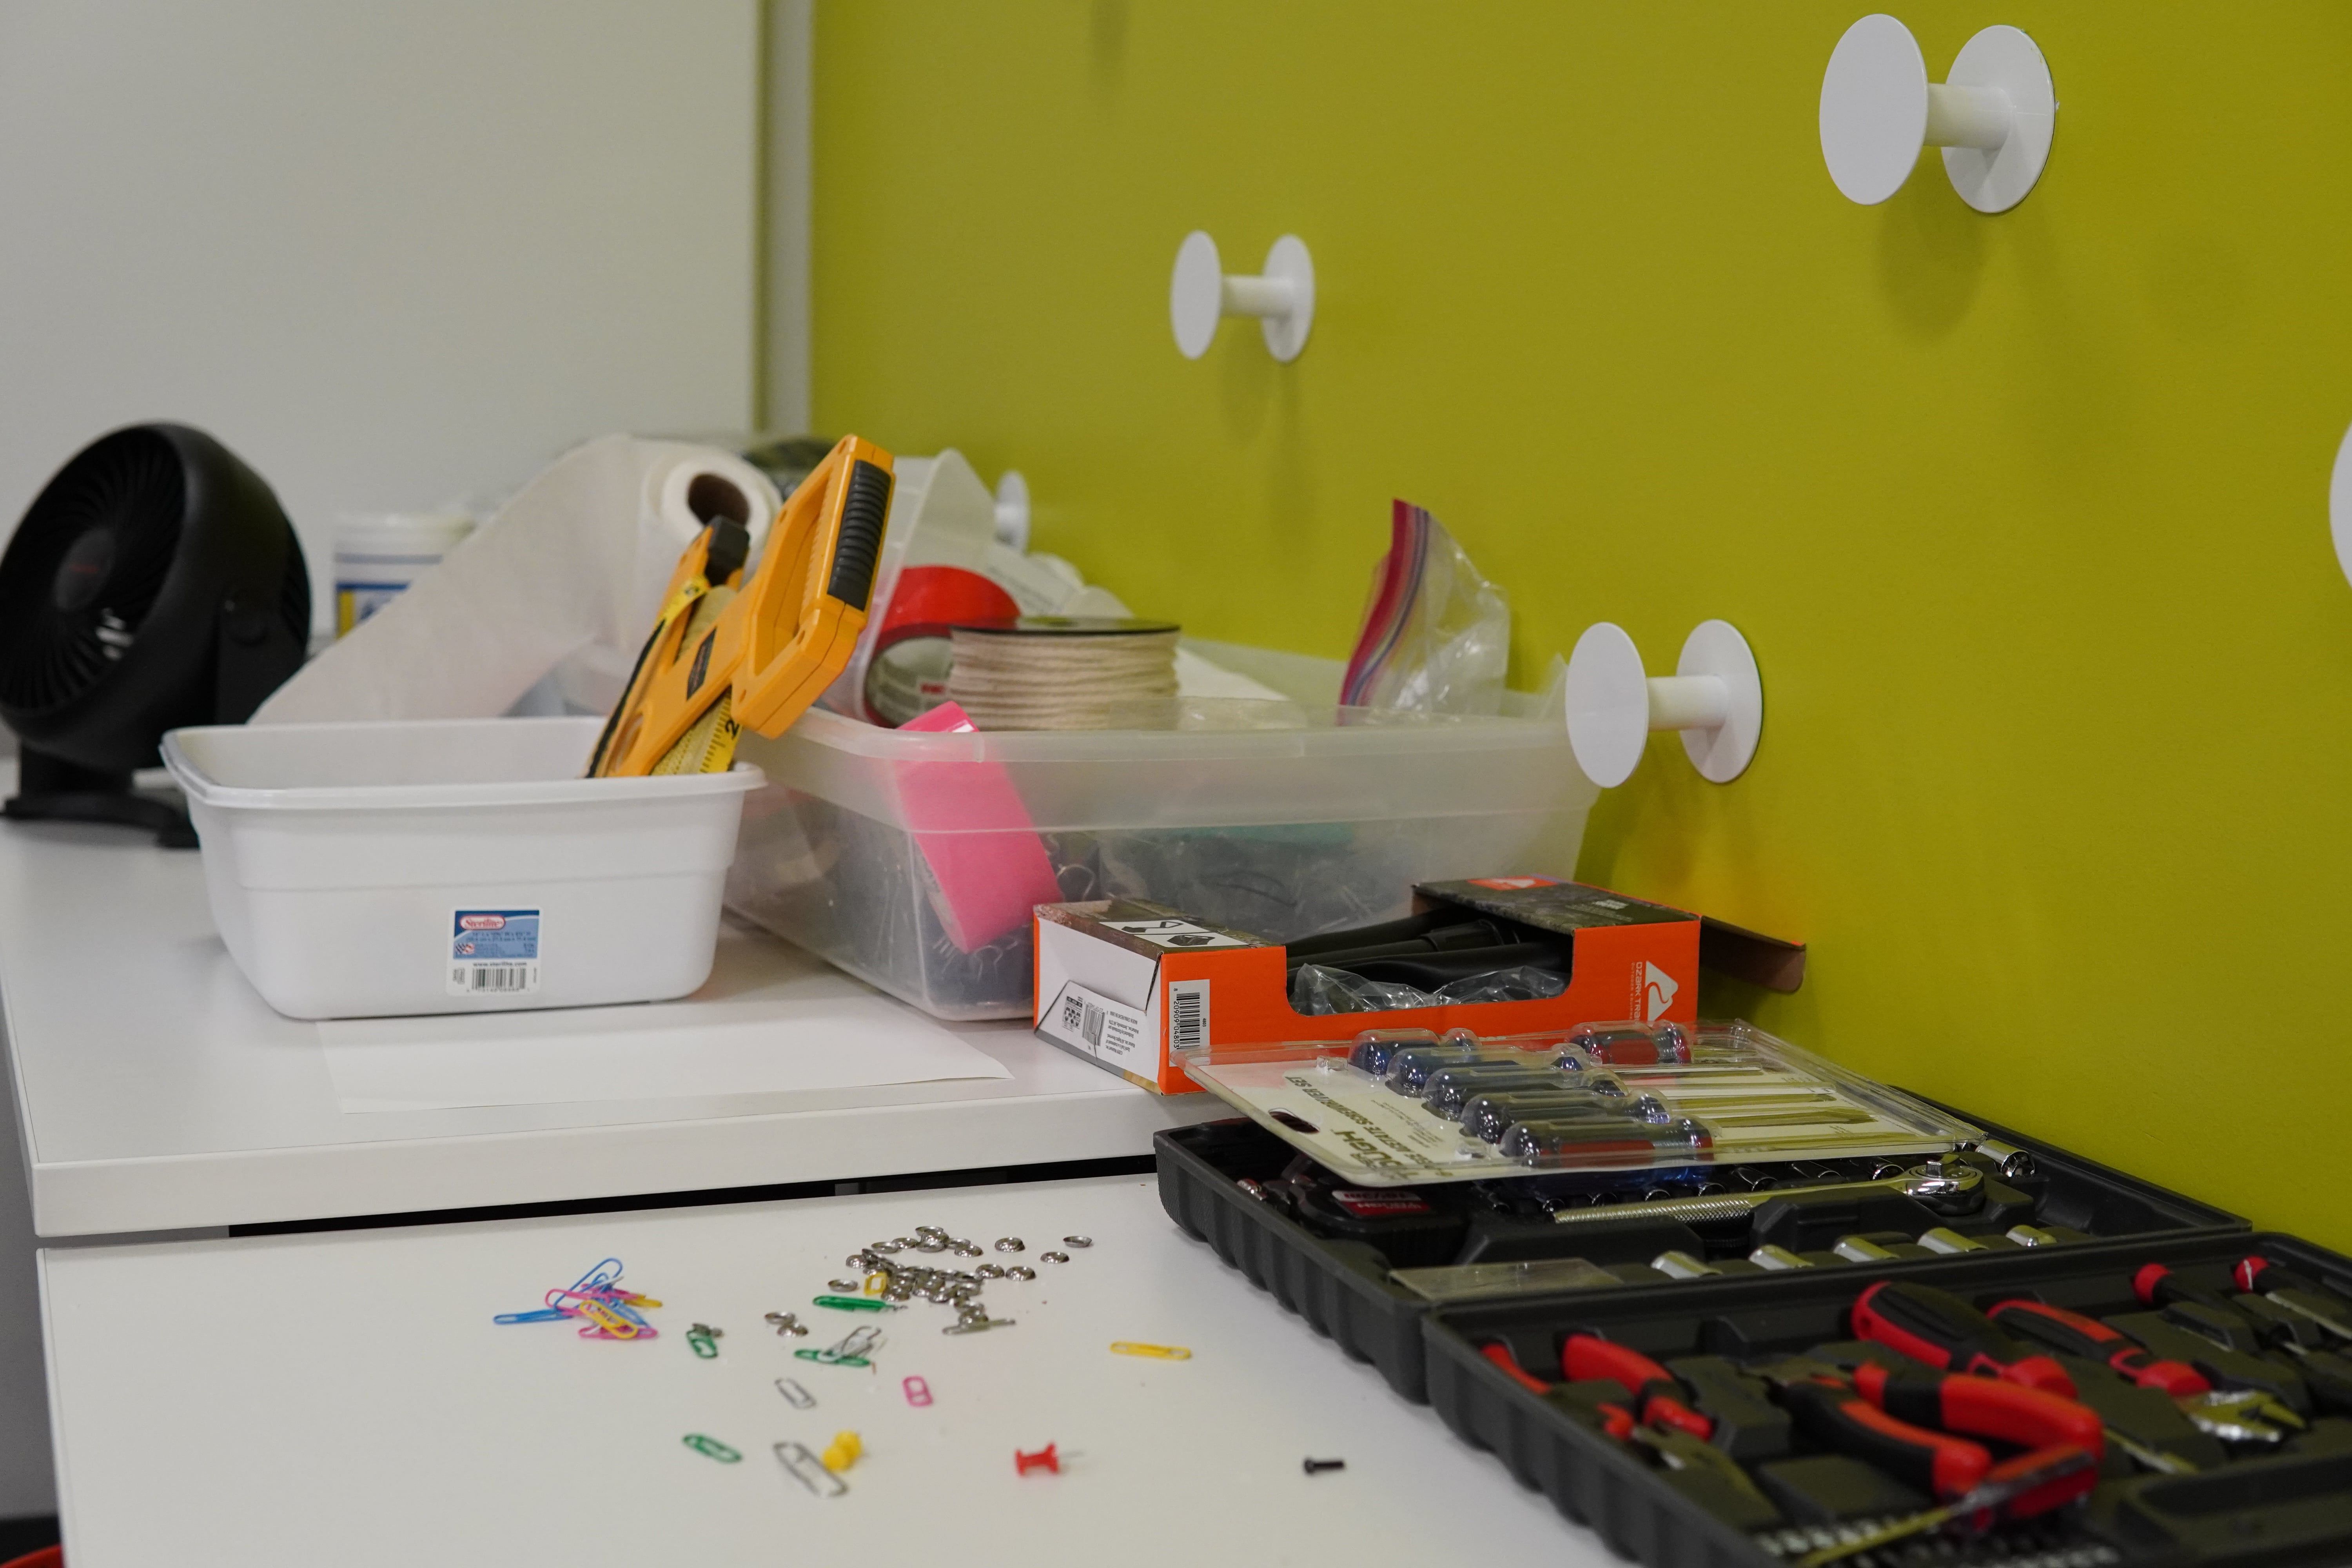 Various tools and supplies are opened on a table in front of a green wall.